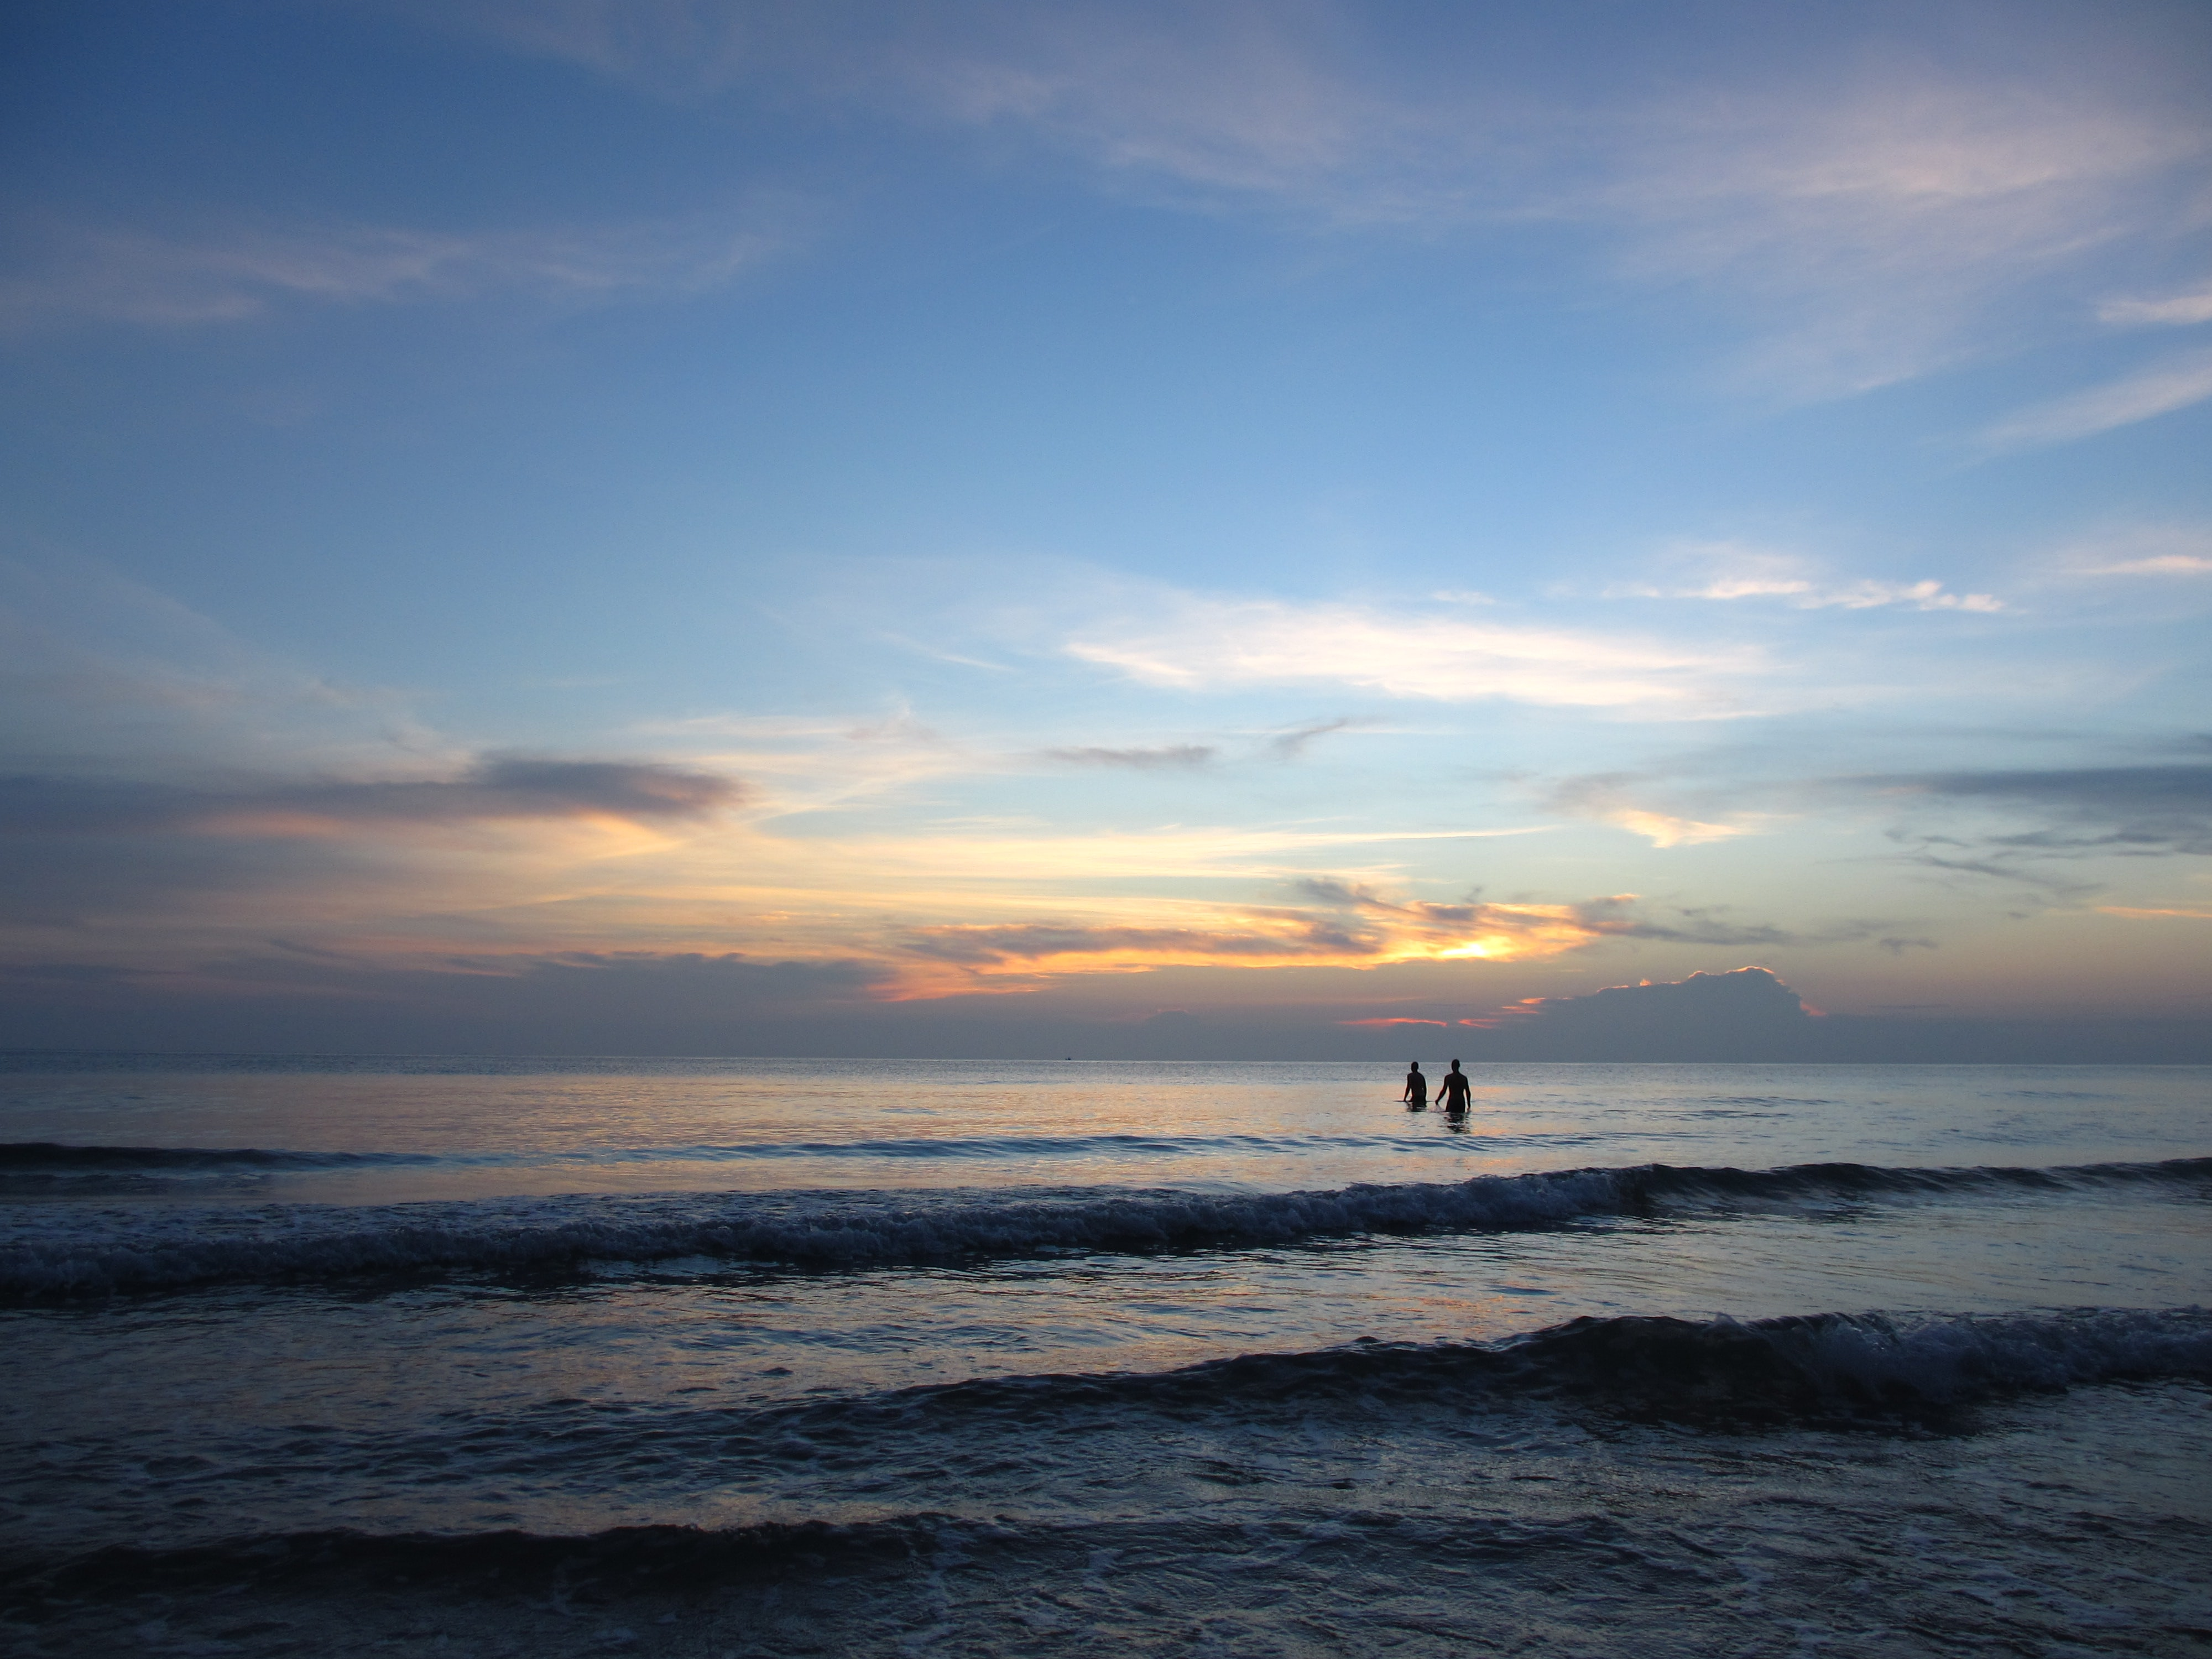 silhouette photography of two person in body of water